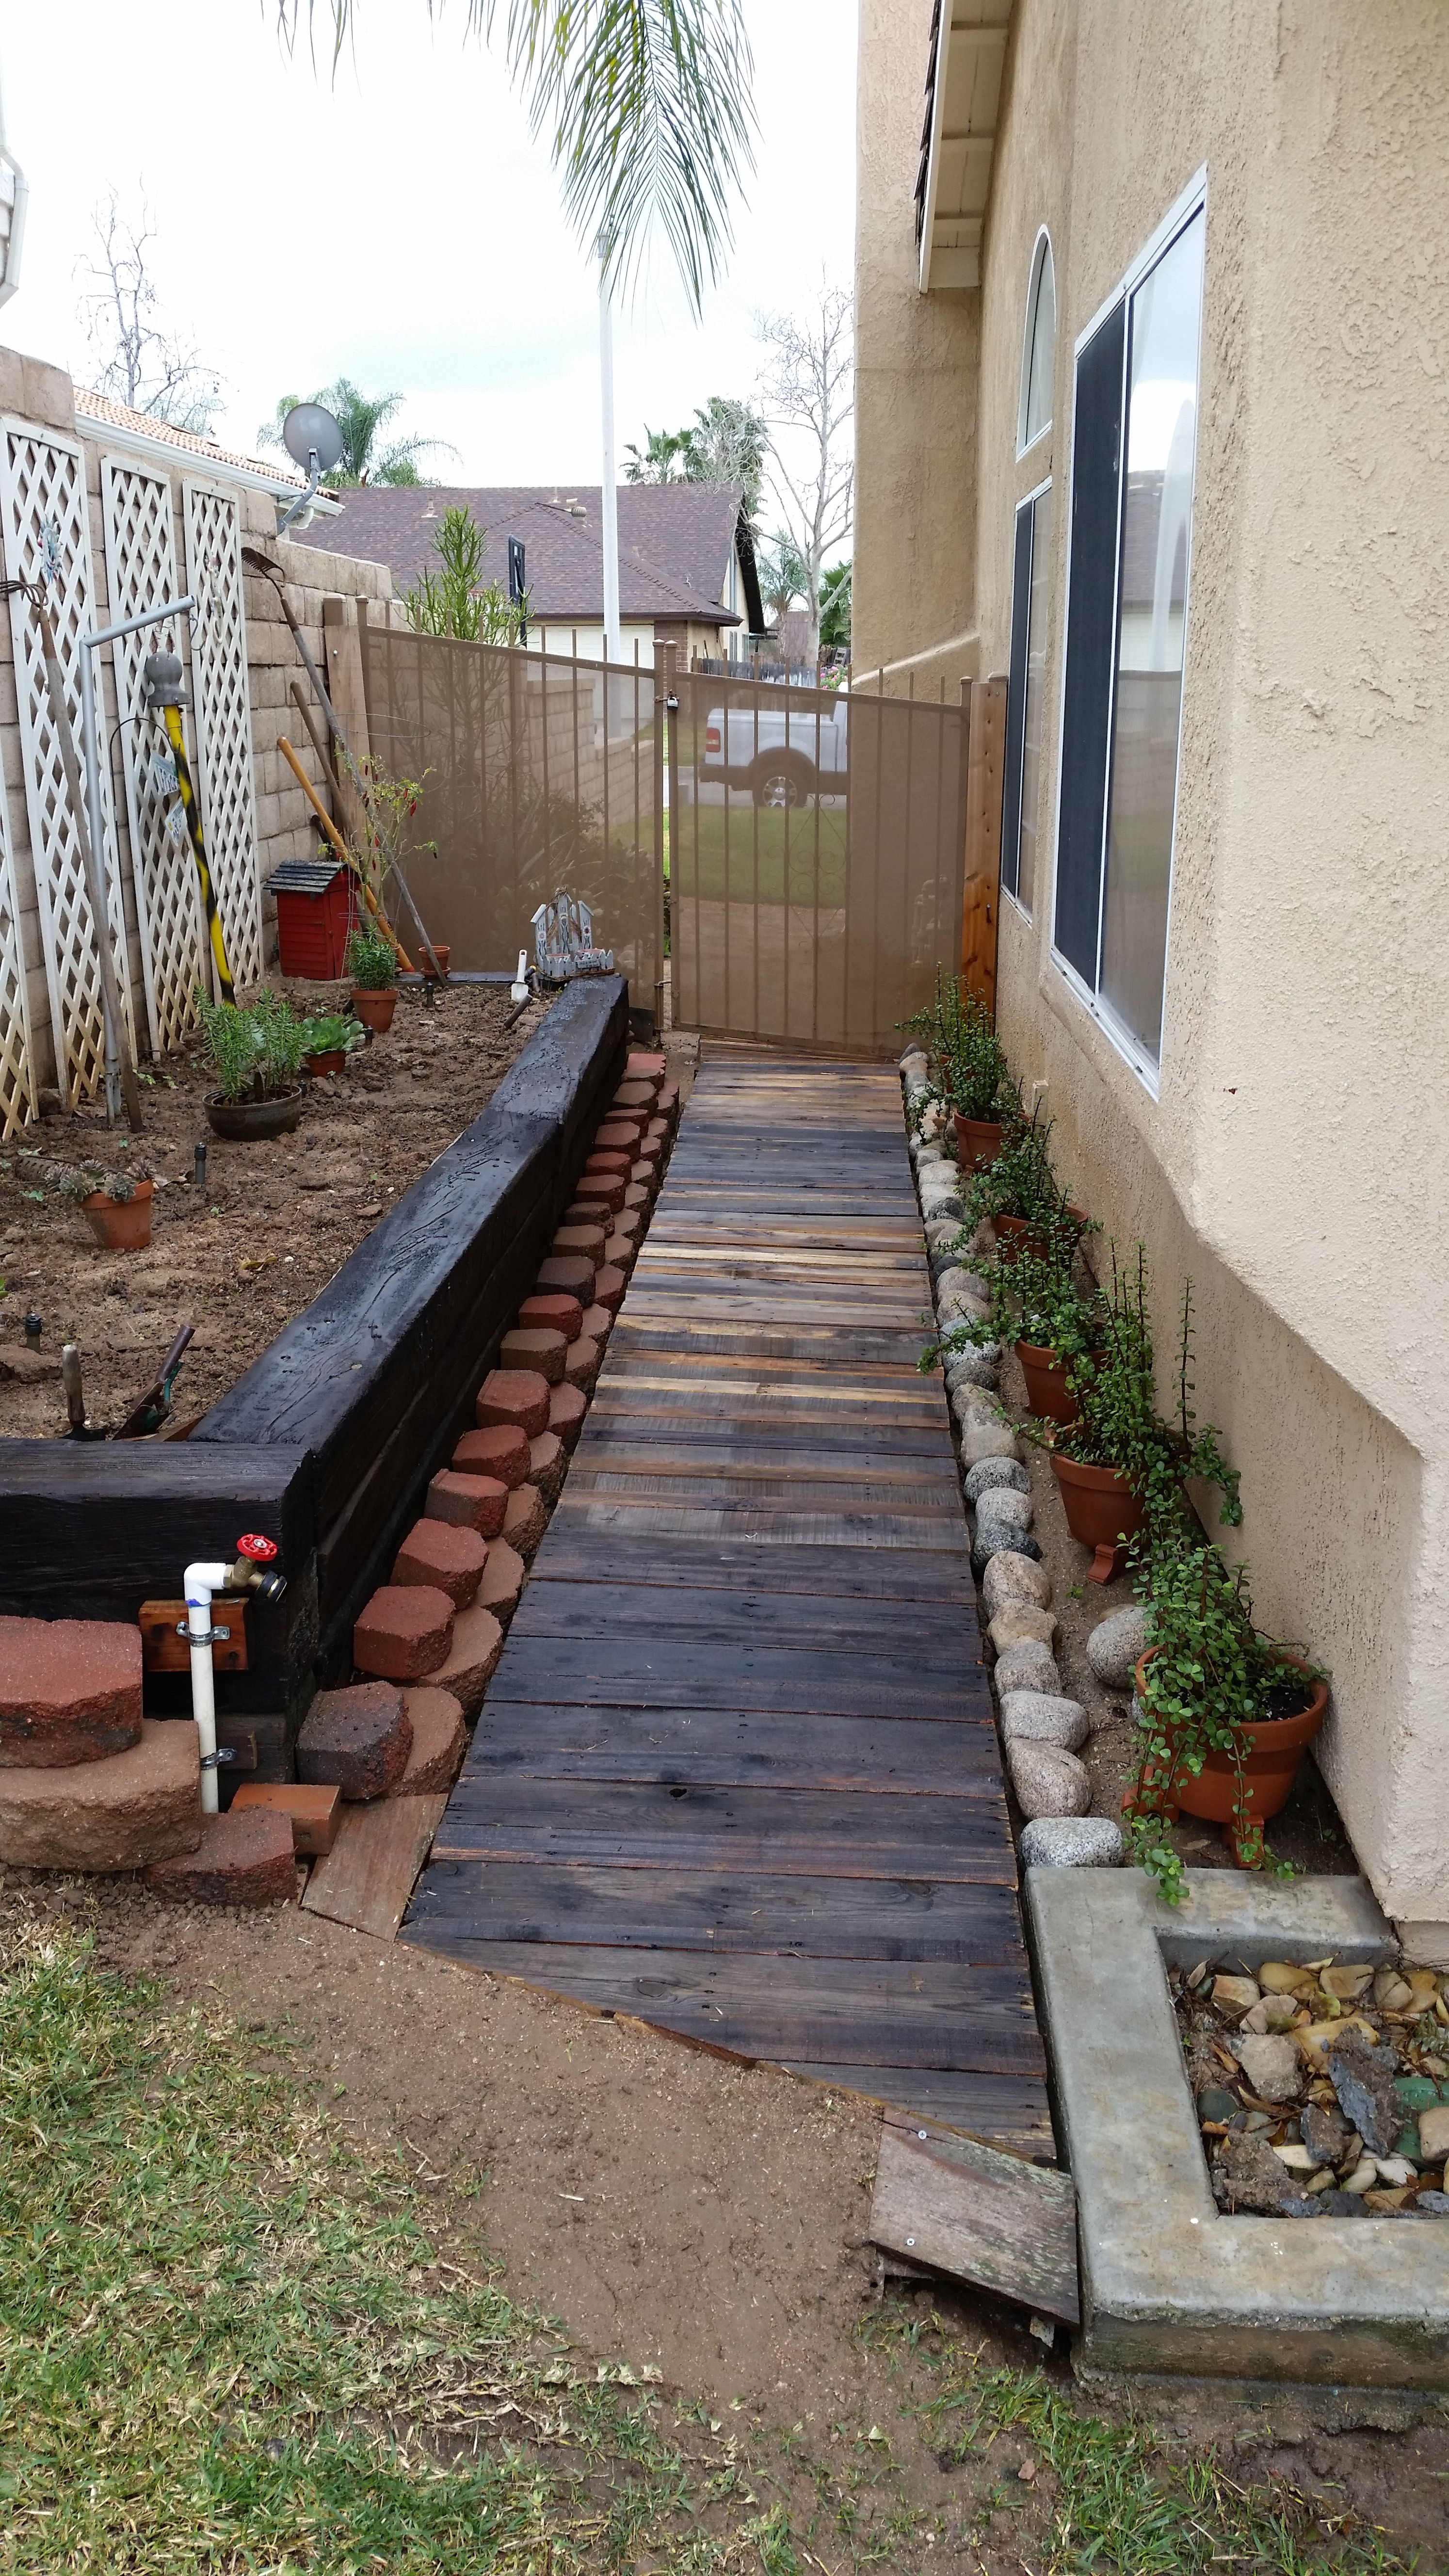 Enchanting Small Garden Landscape Ideas With Stepping Walk: Recycled Pallet Garden Walkway